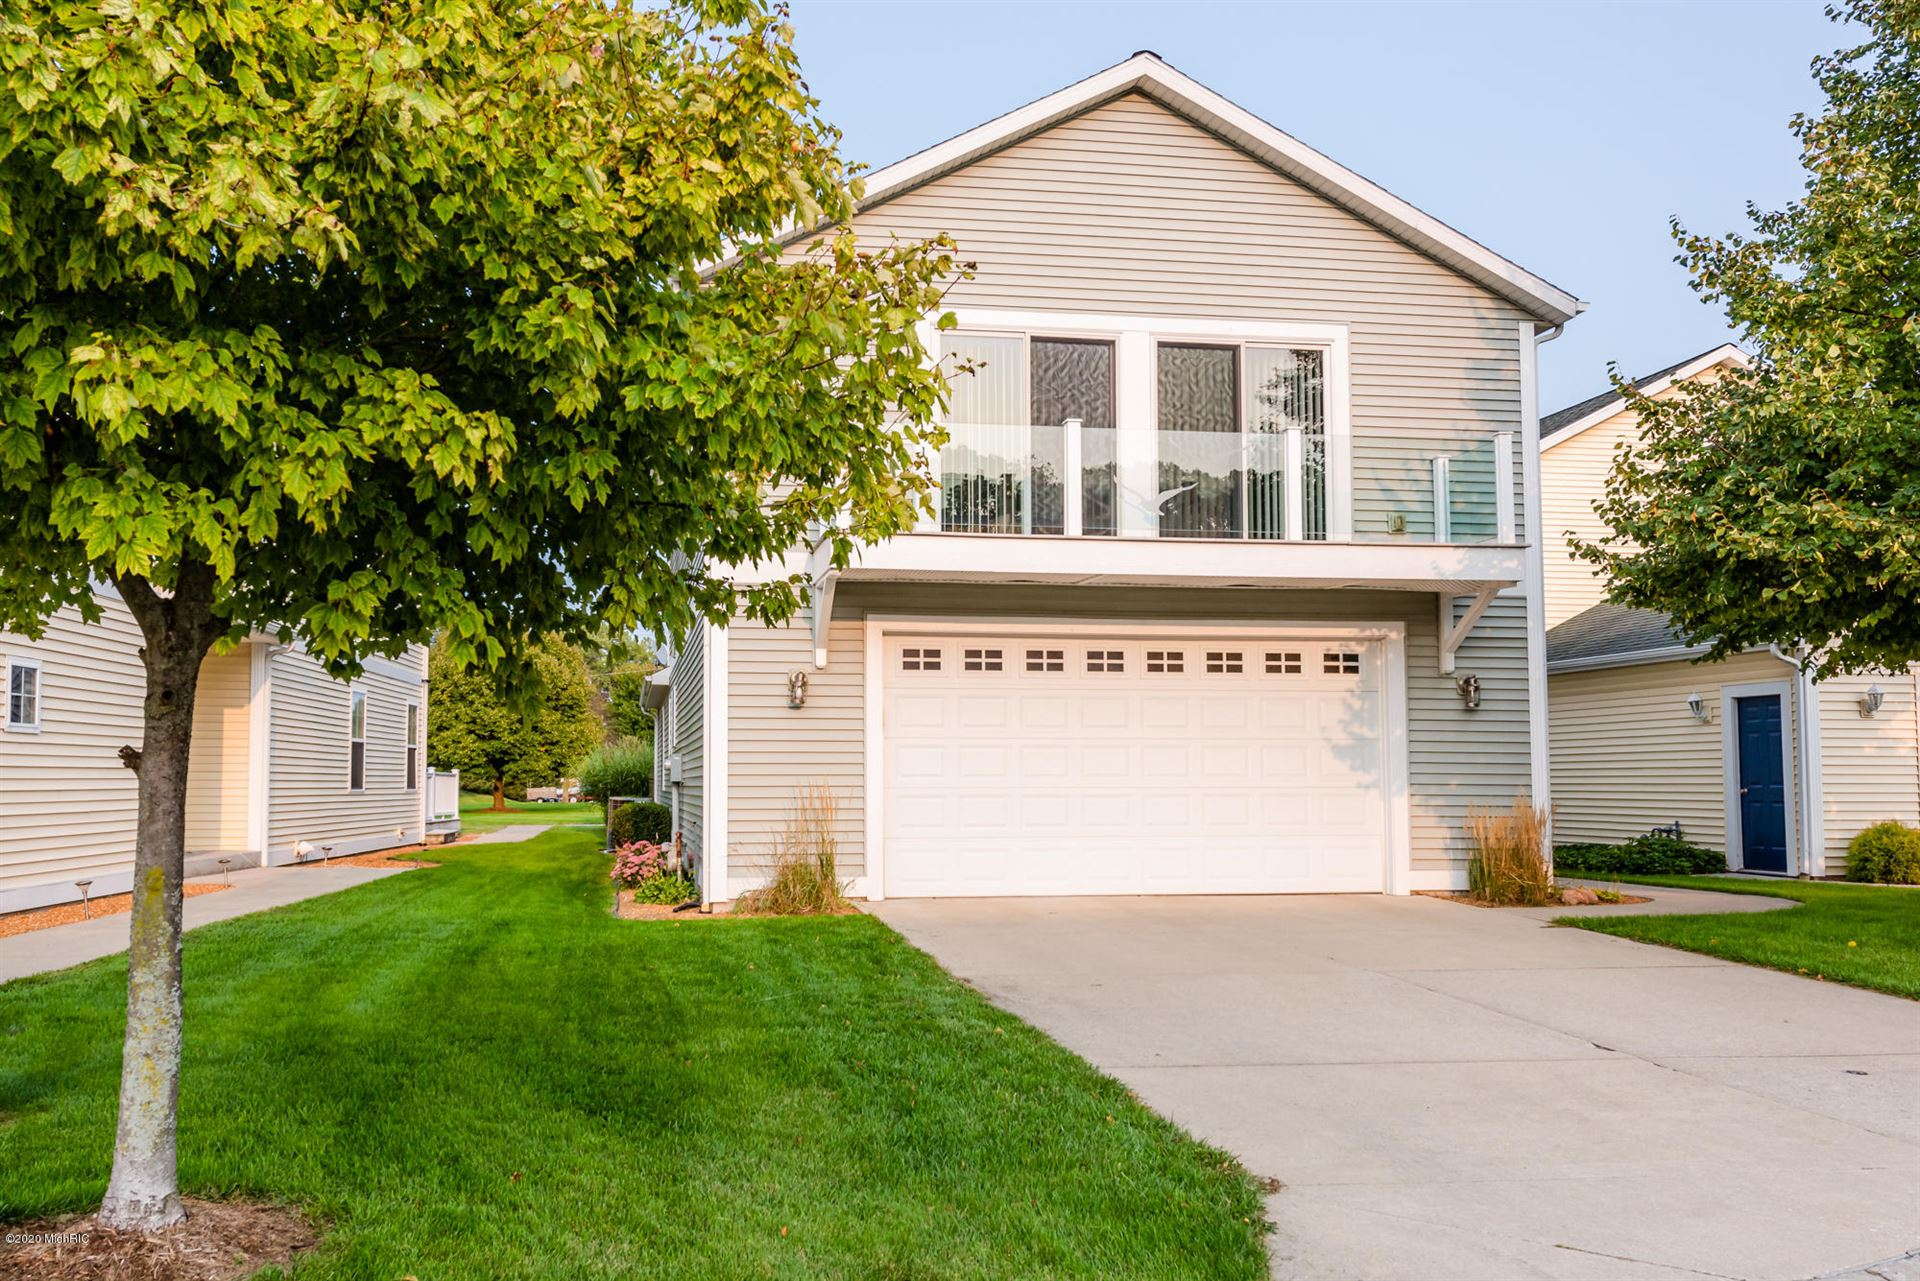 403 Anchors Way, Saint Joseph, MI 49085 - MLS#: 20039447